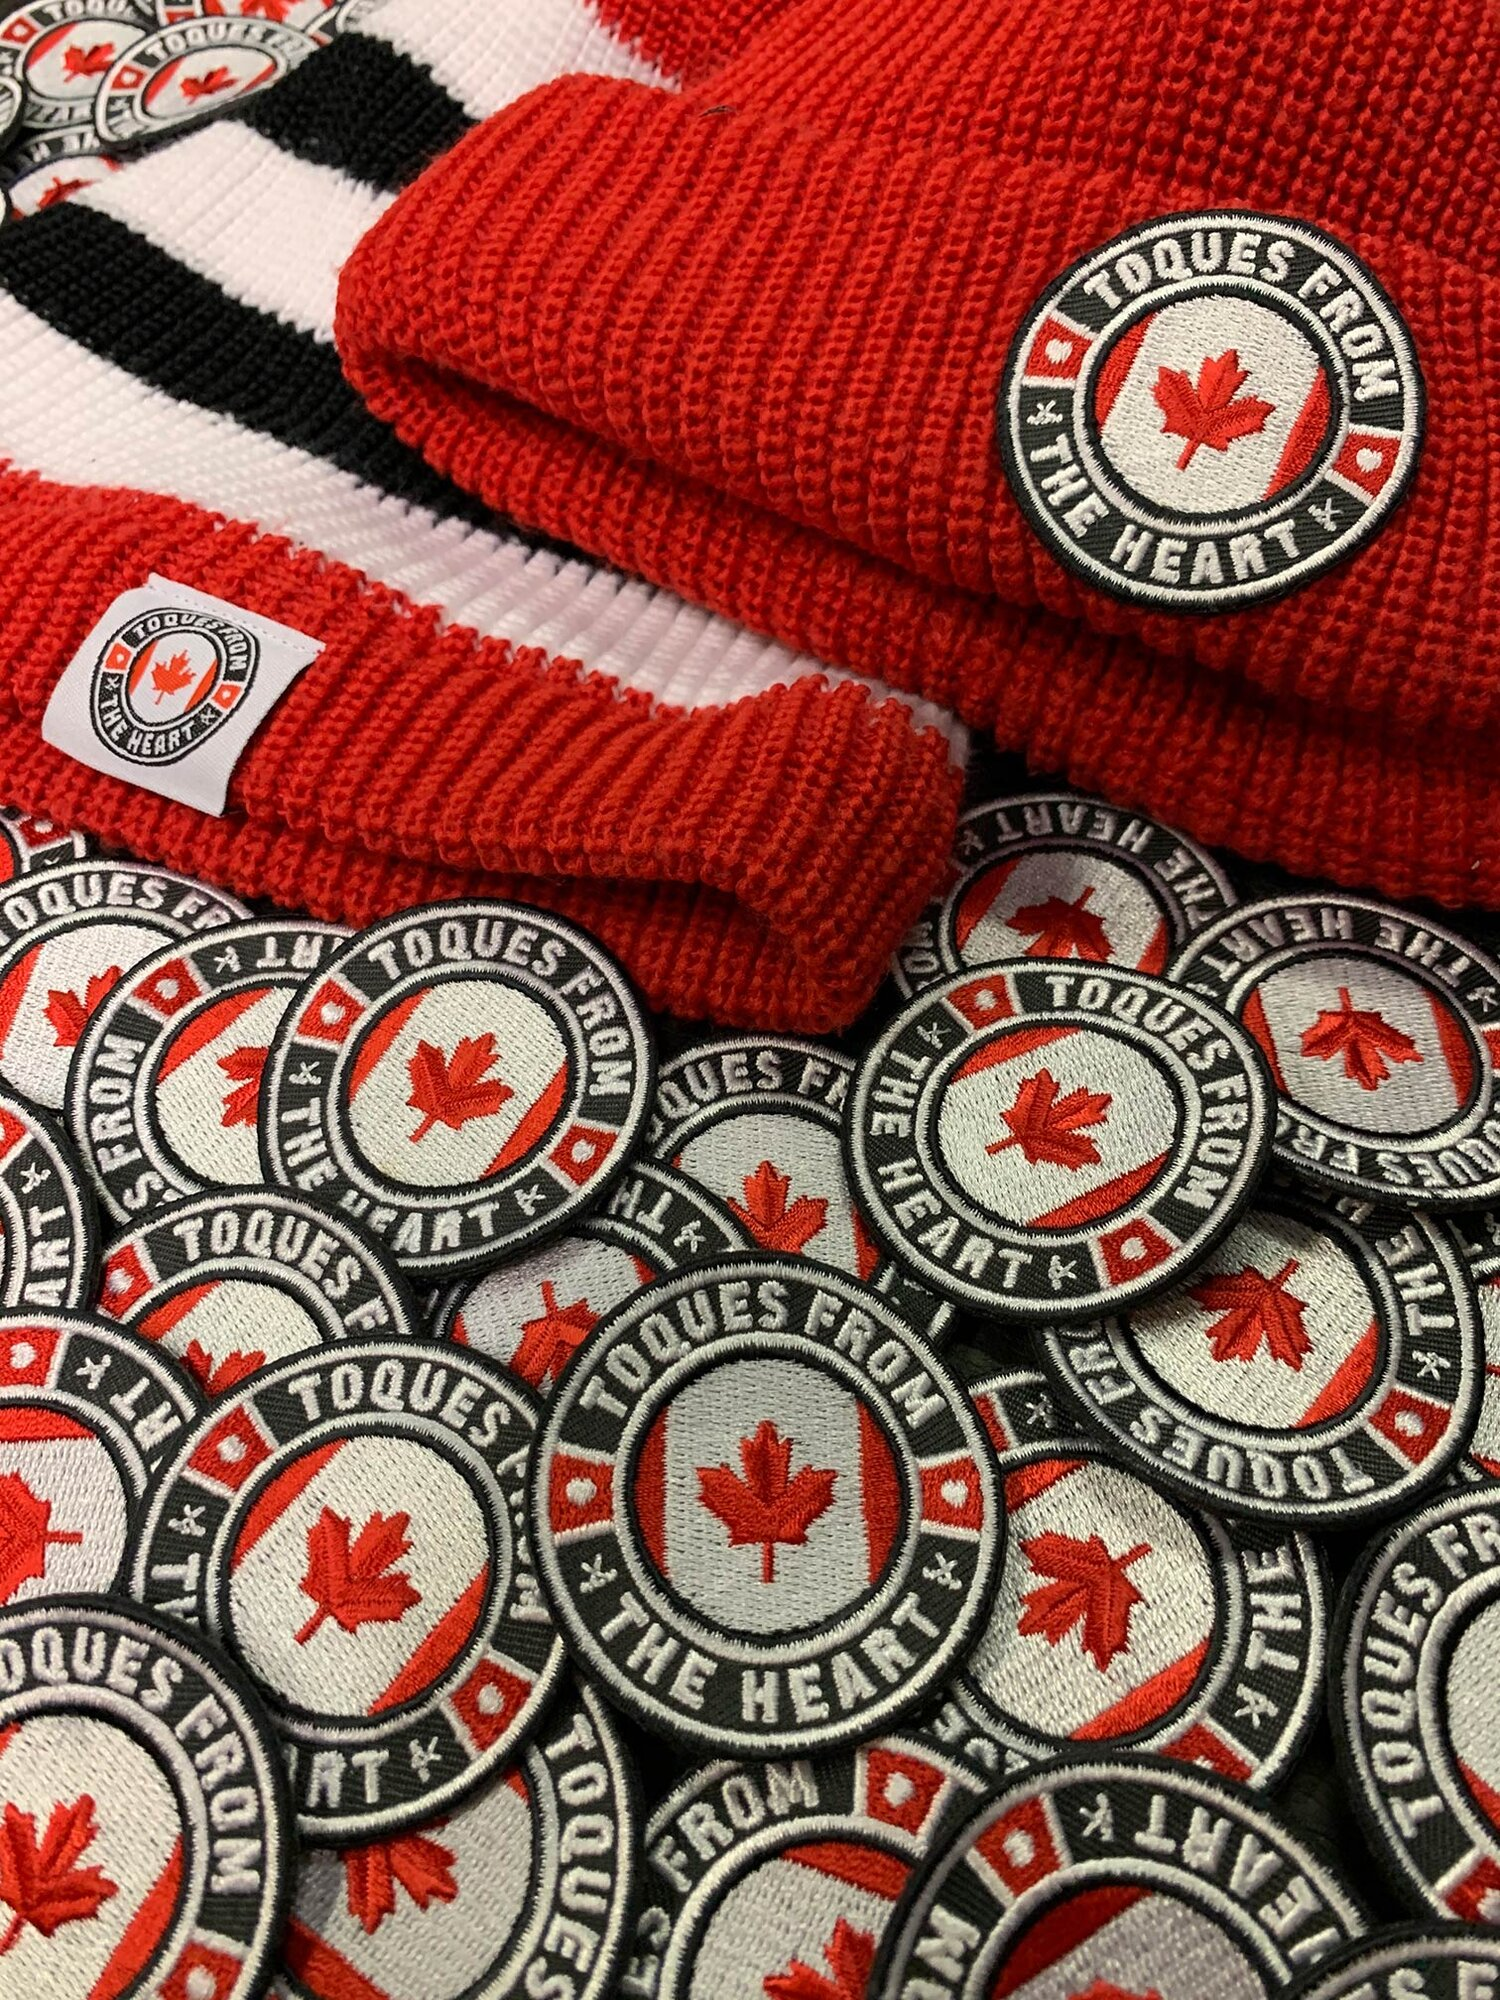 Toques made from a hockey socks with TFTH patches